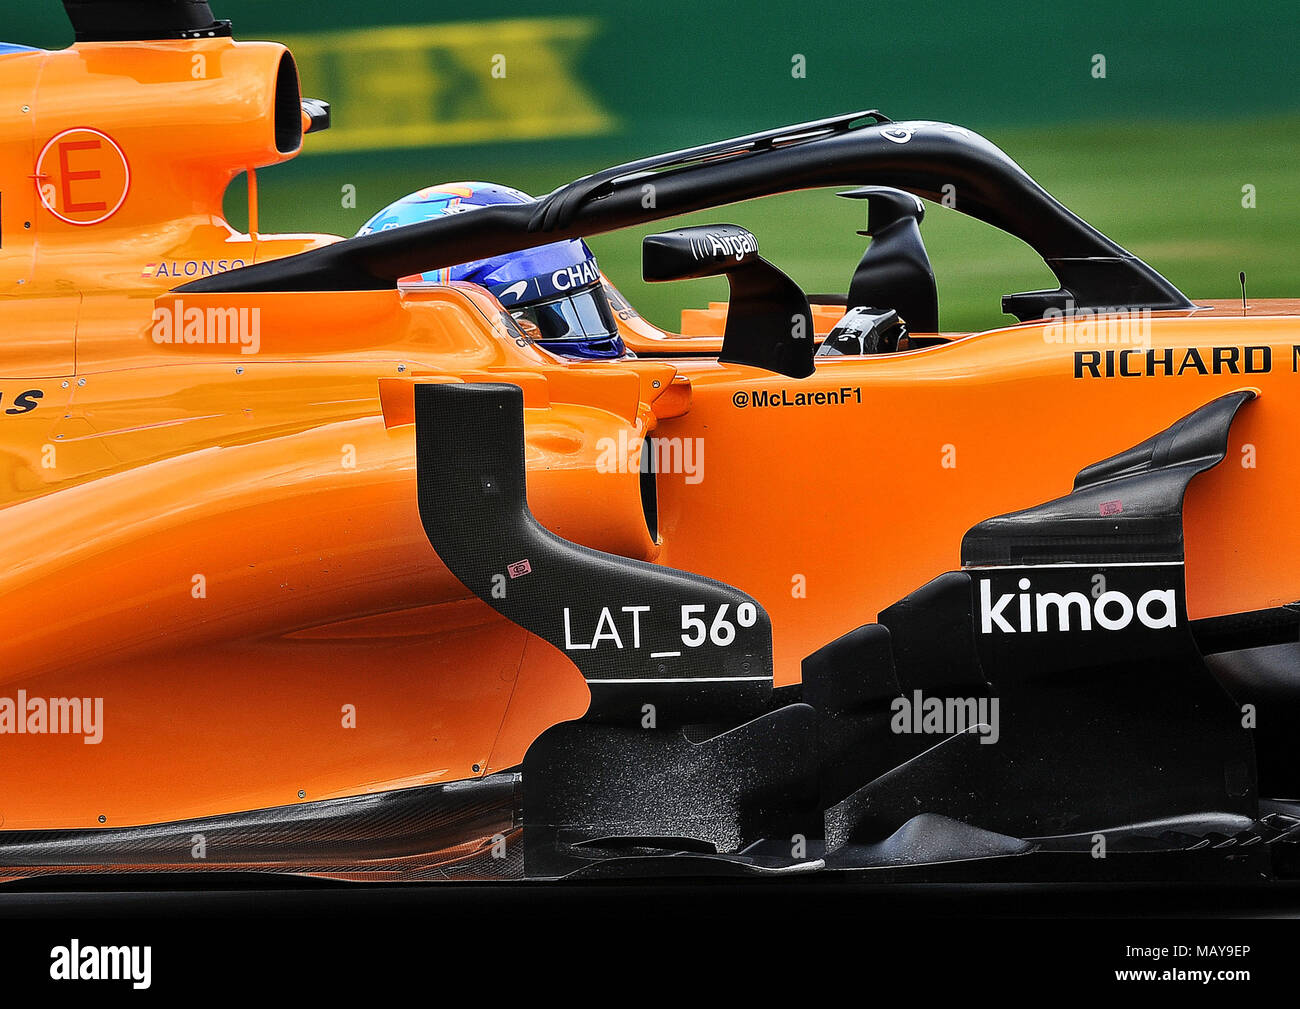 fernando alonso 2018 stock photos fernando alonso 2018 stock images alamy. Black Bedroom Furniture Sets. Home Design Ideas